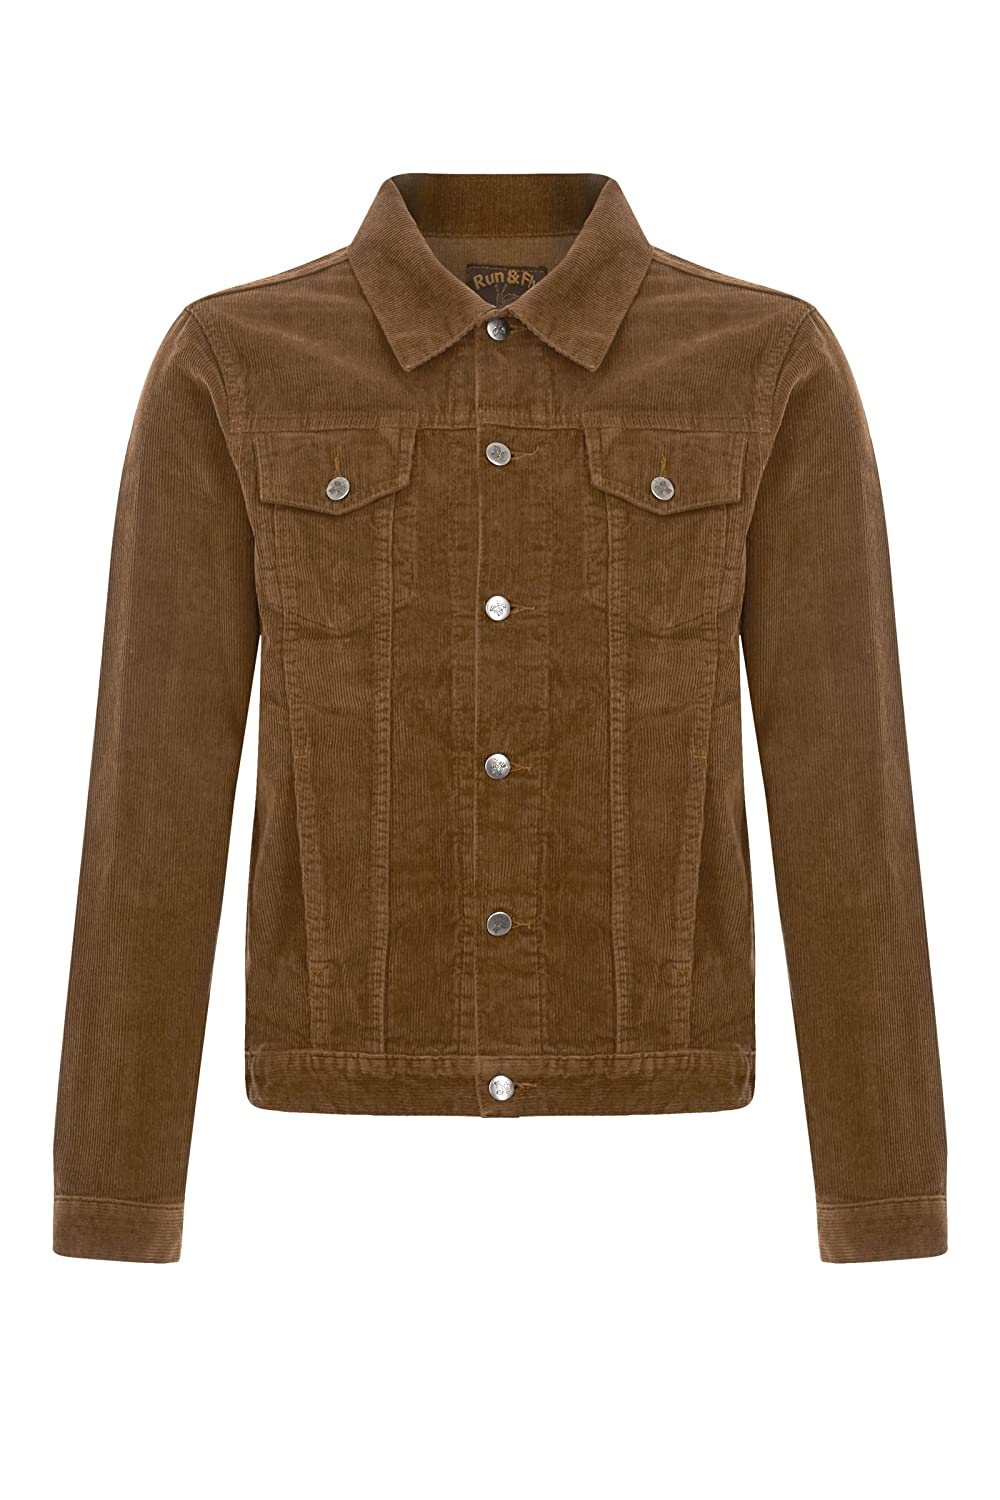 Men's Vintage Style Coats and Jackets 60s 70s Retro Vintage Corduroy Cord Western Trucker Jacket $65.95 AT vintagedancer.com